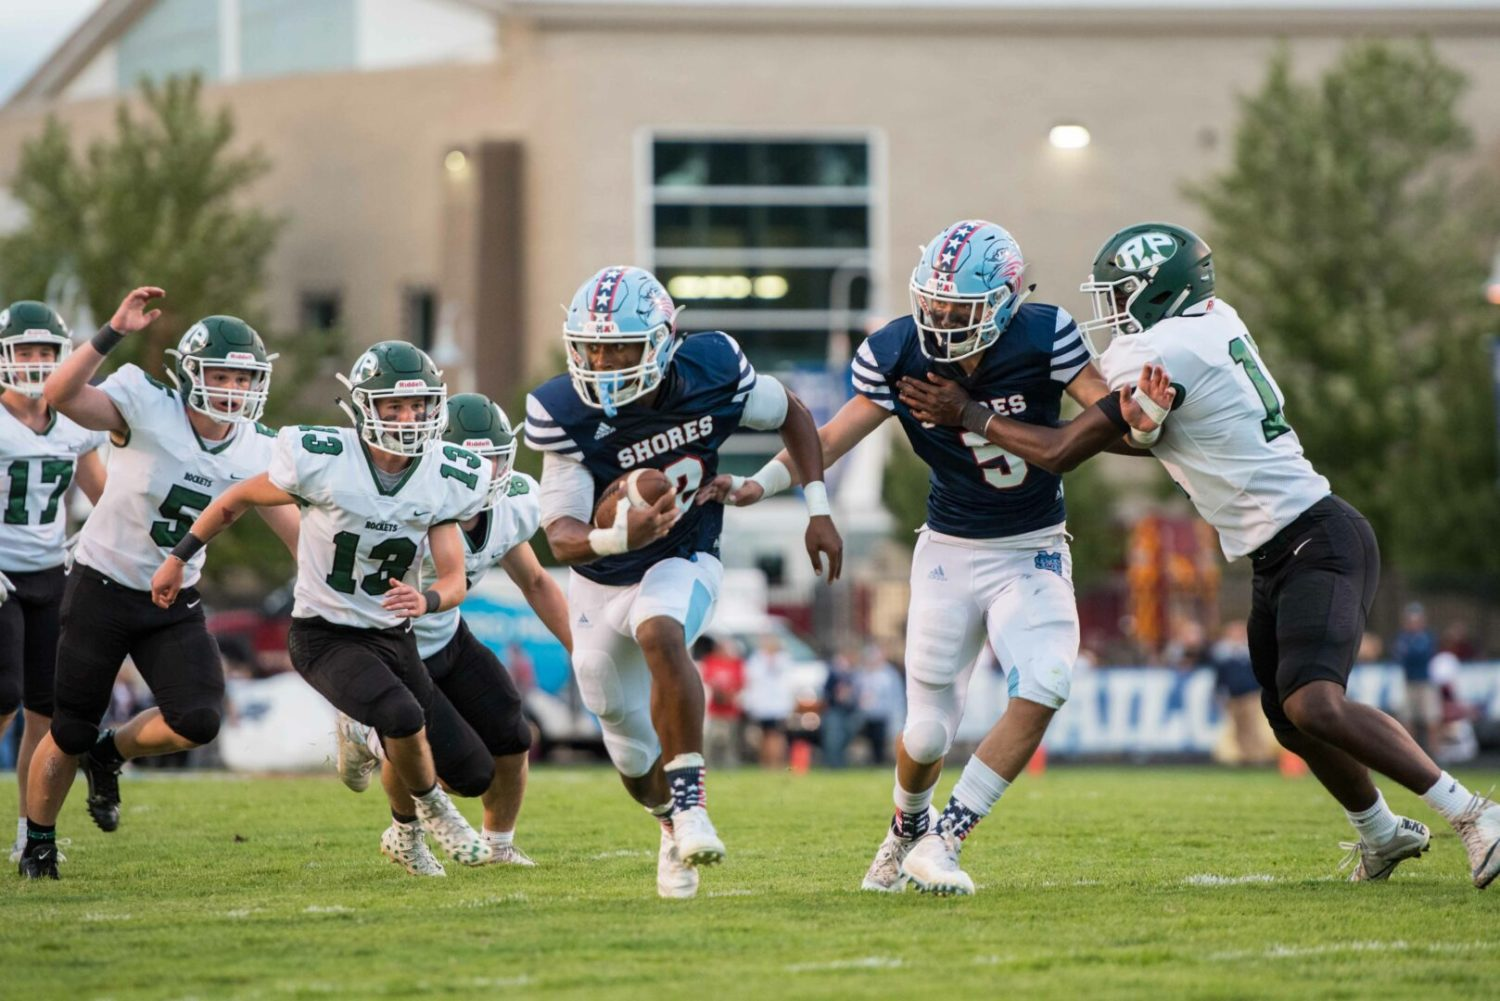 Caden Broersma returns in style, leading Mona Shores to a 33-13 win over R-P